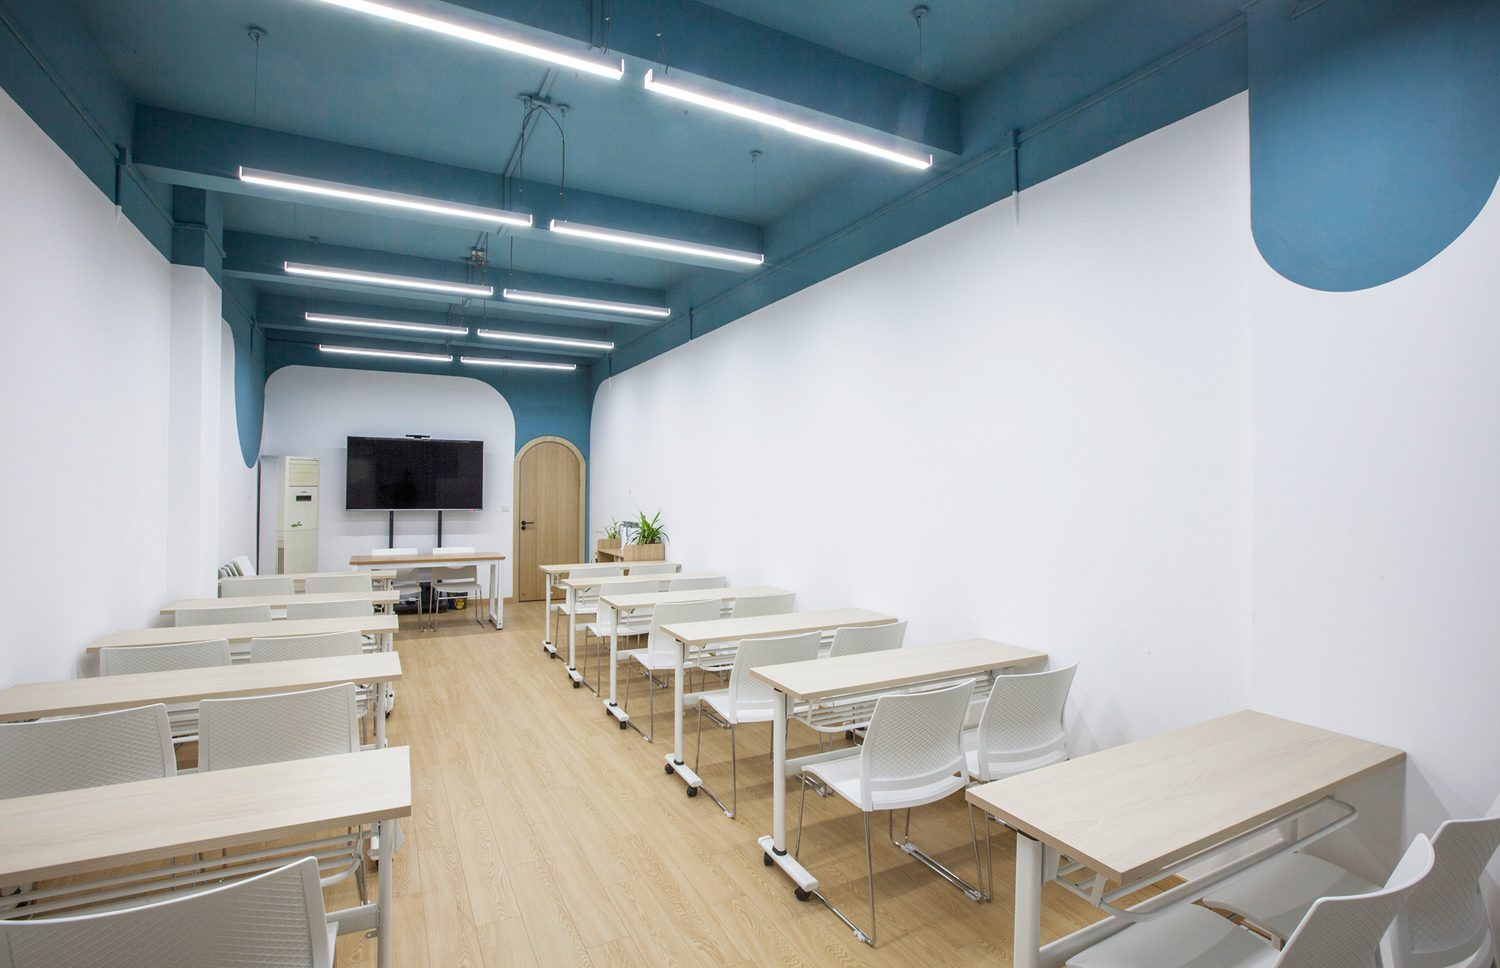 An educational space offers modular seating.